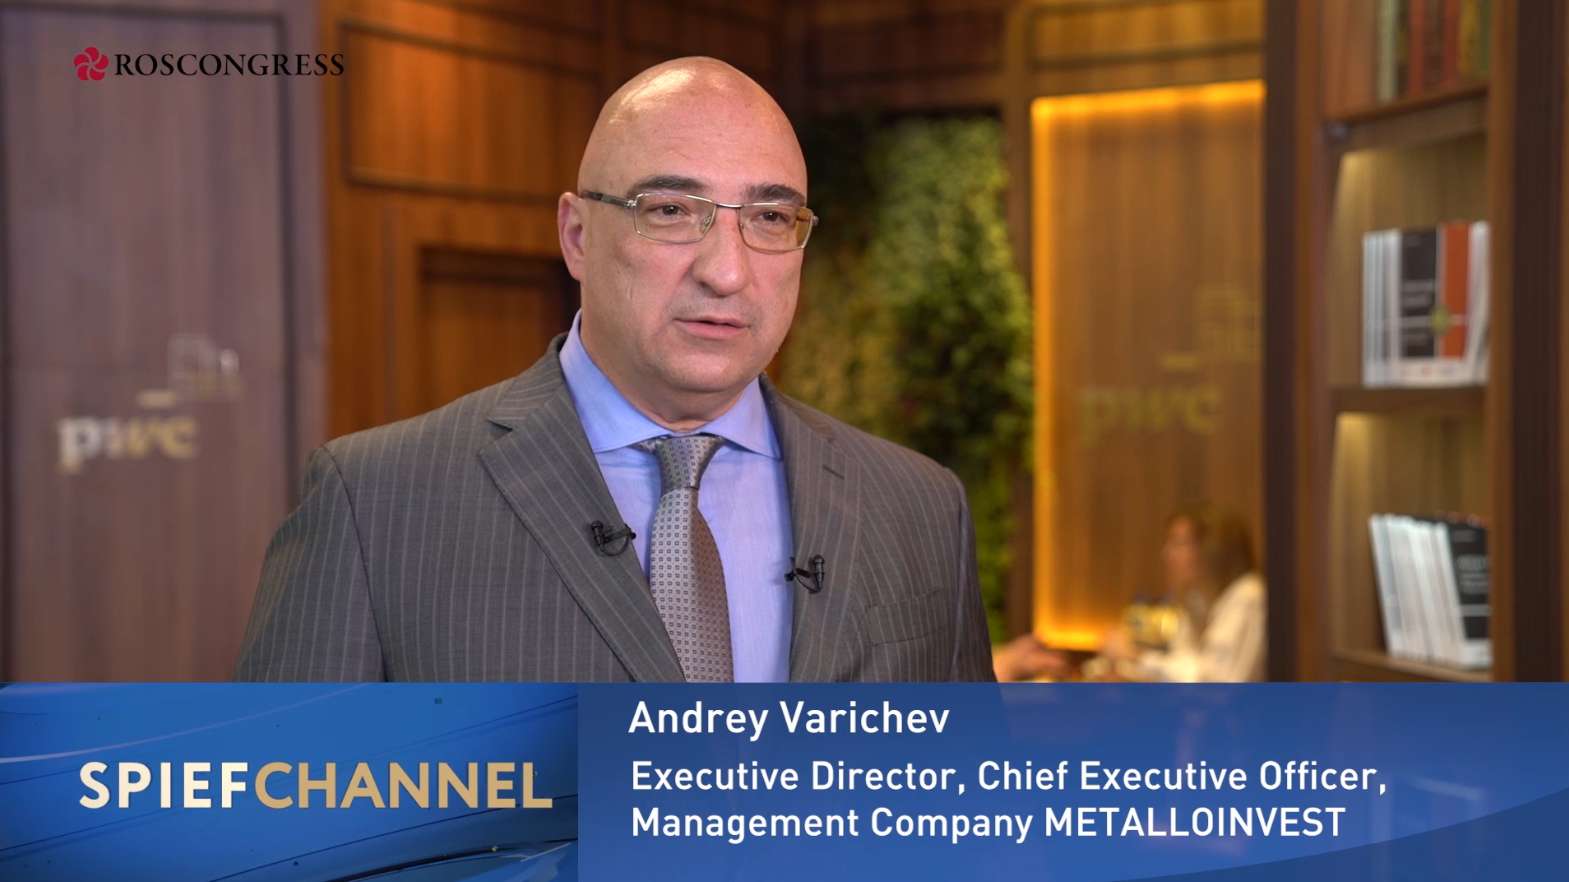 Andrey Varichev, CEO, Metalloinvest Management Company LLC